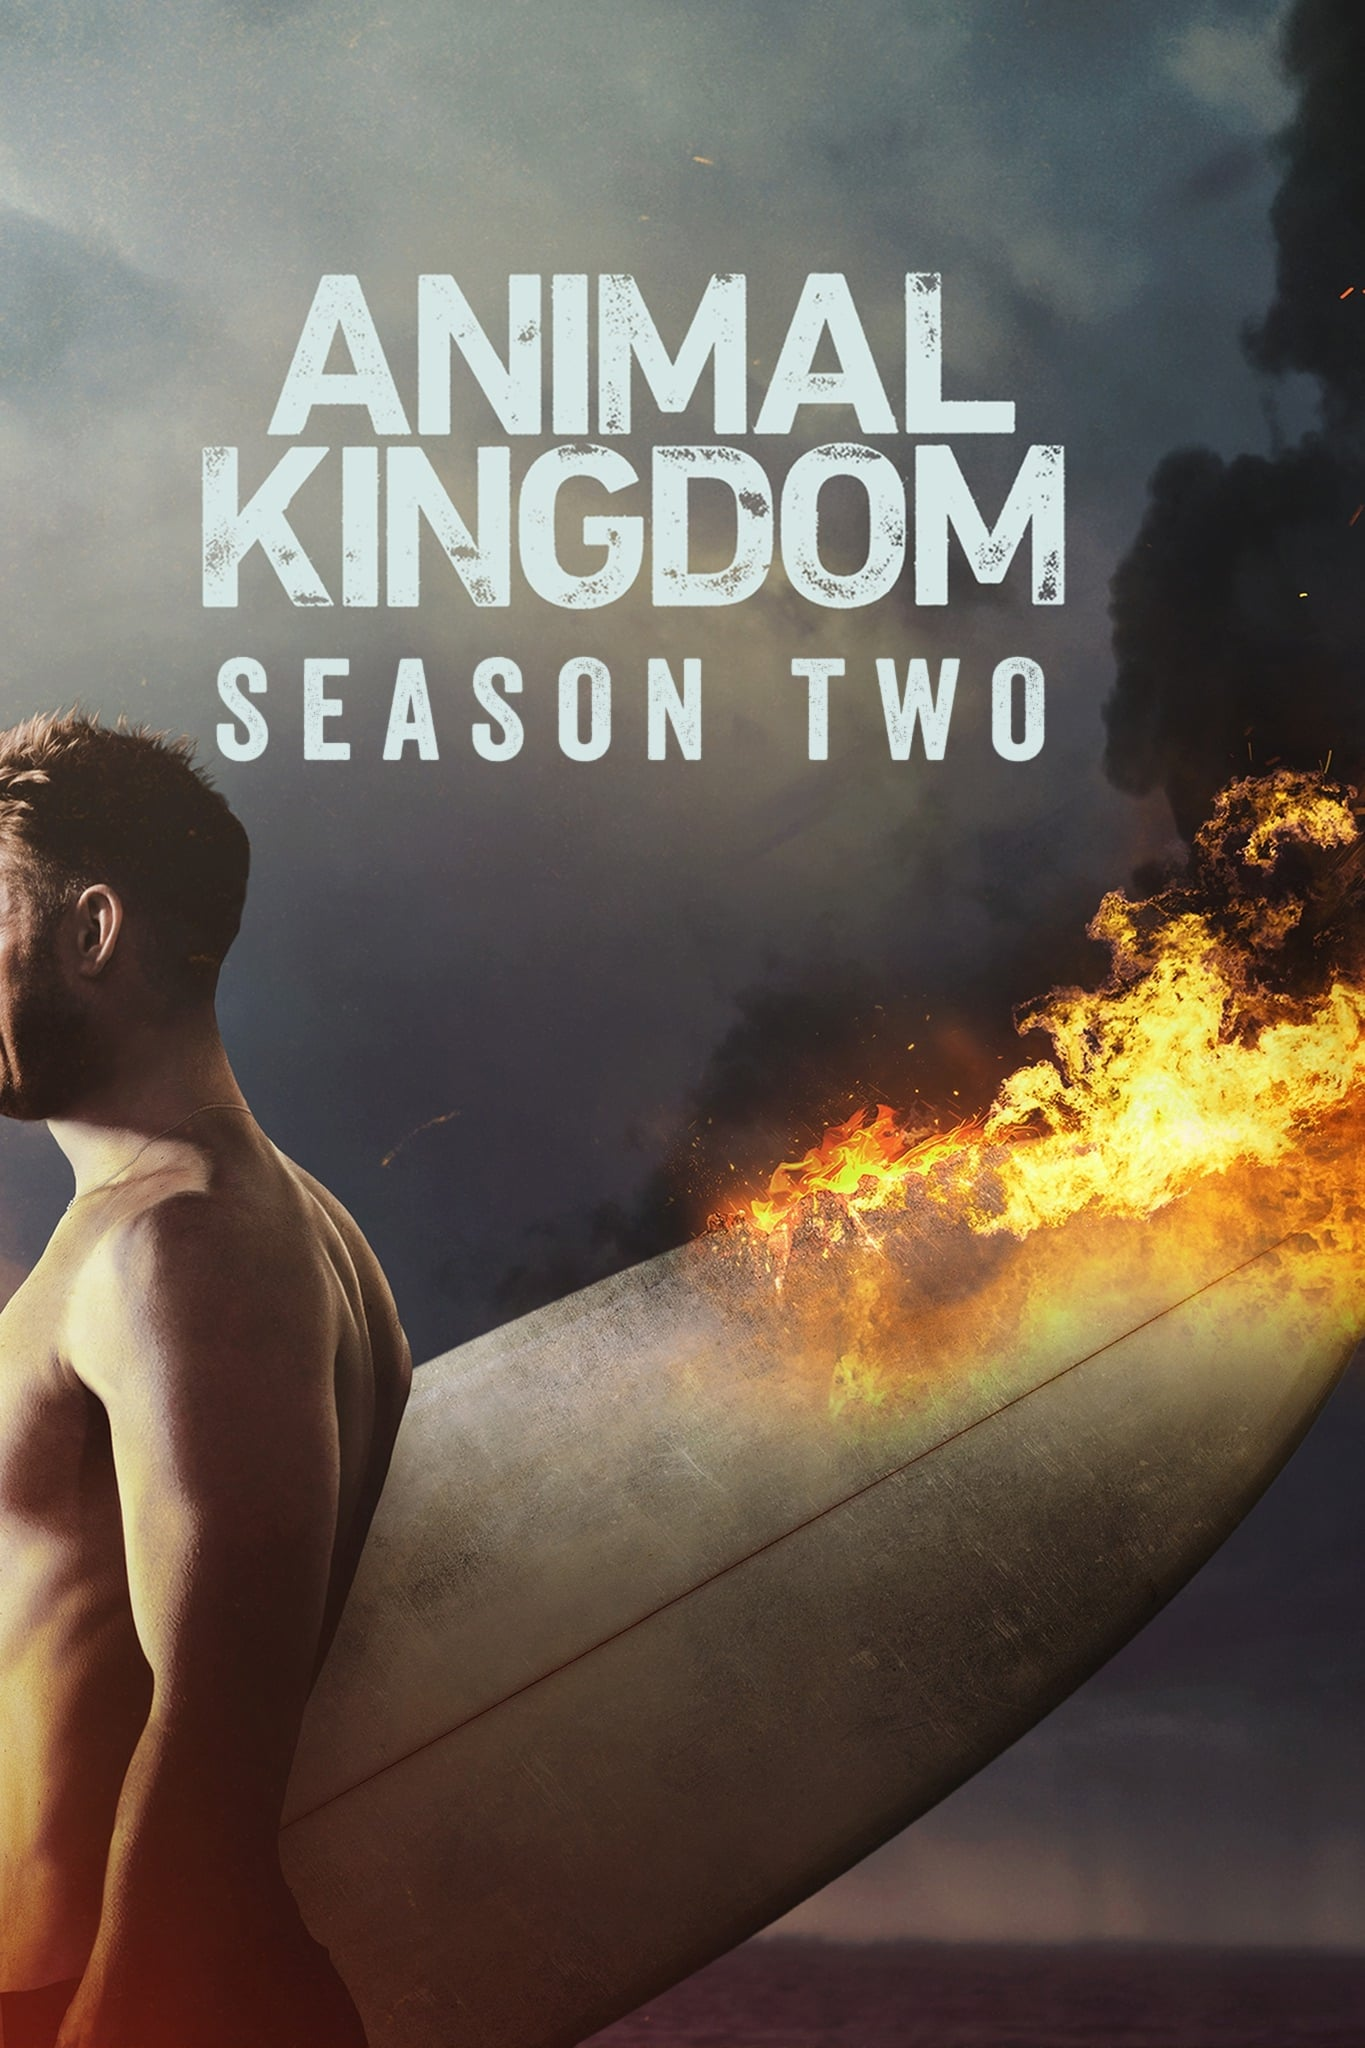 Animal Kingdom Season 2